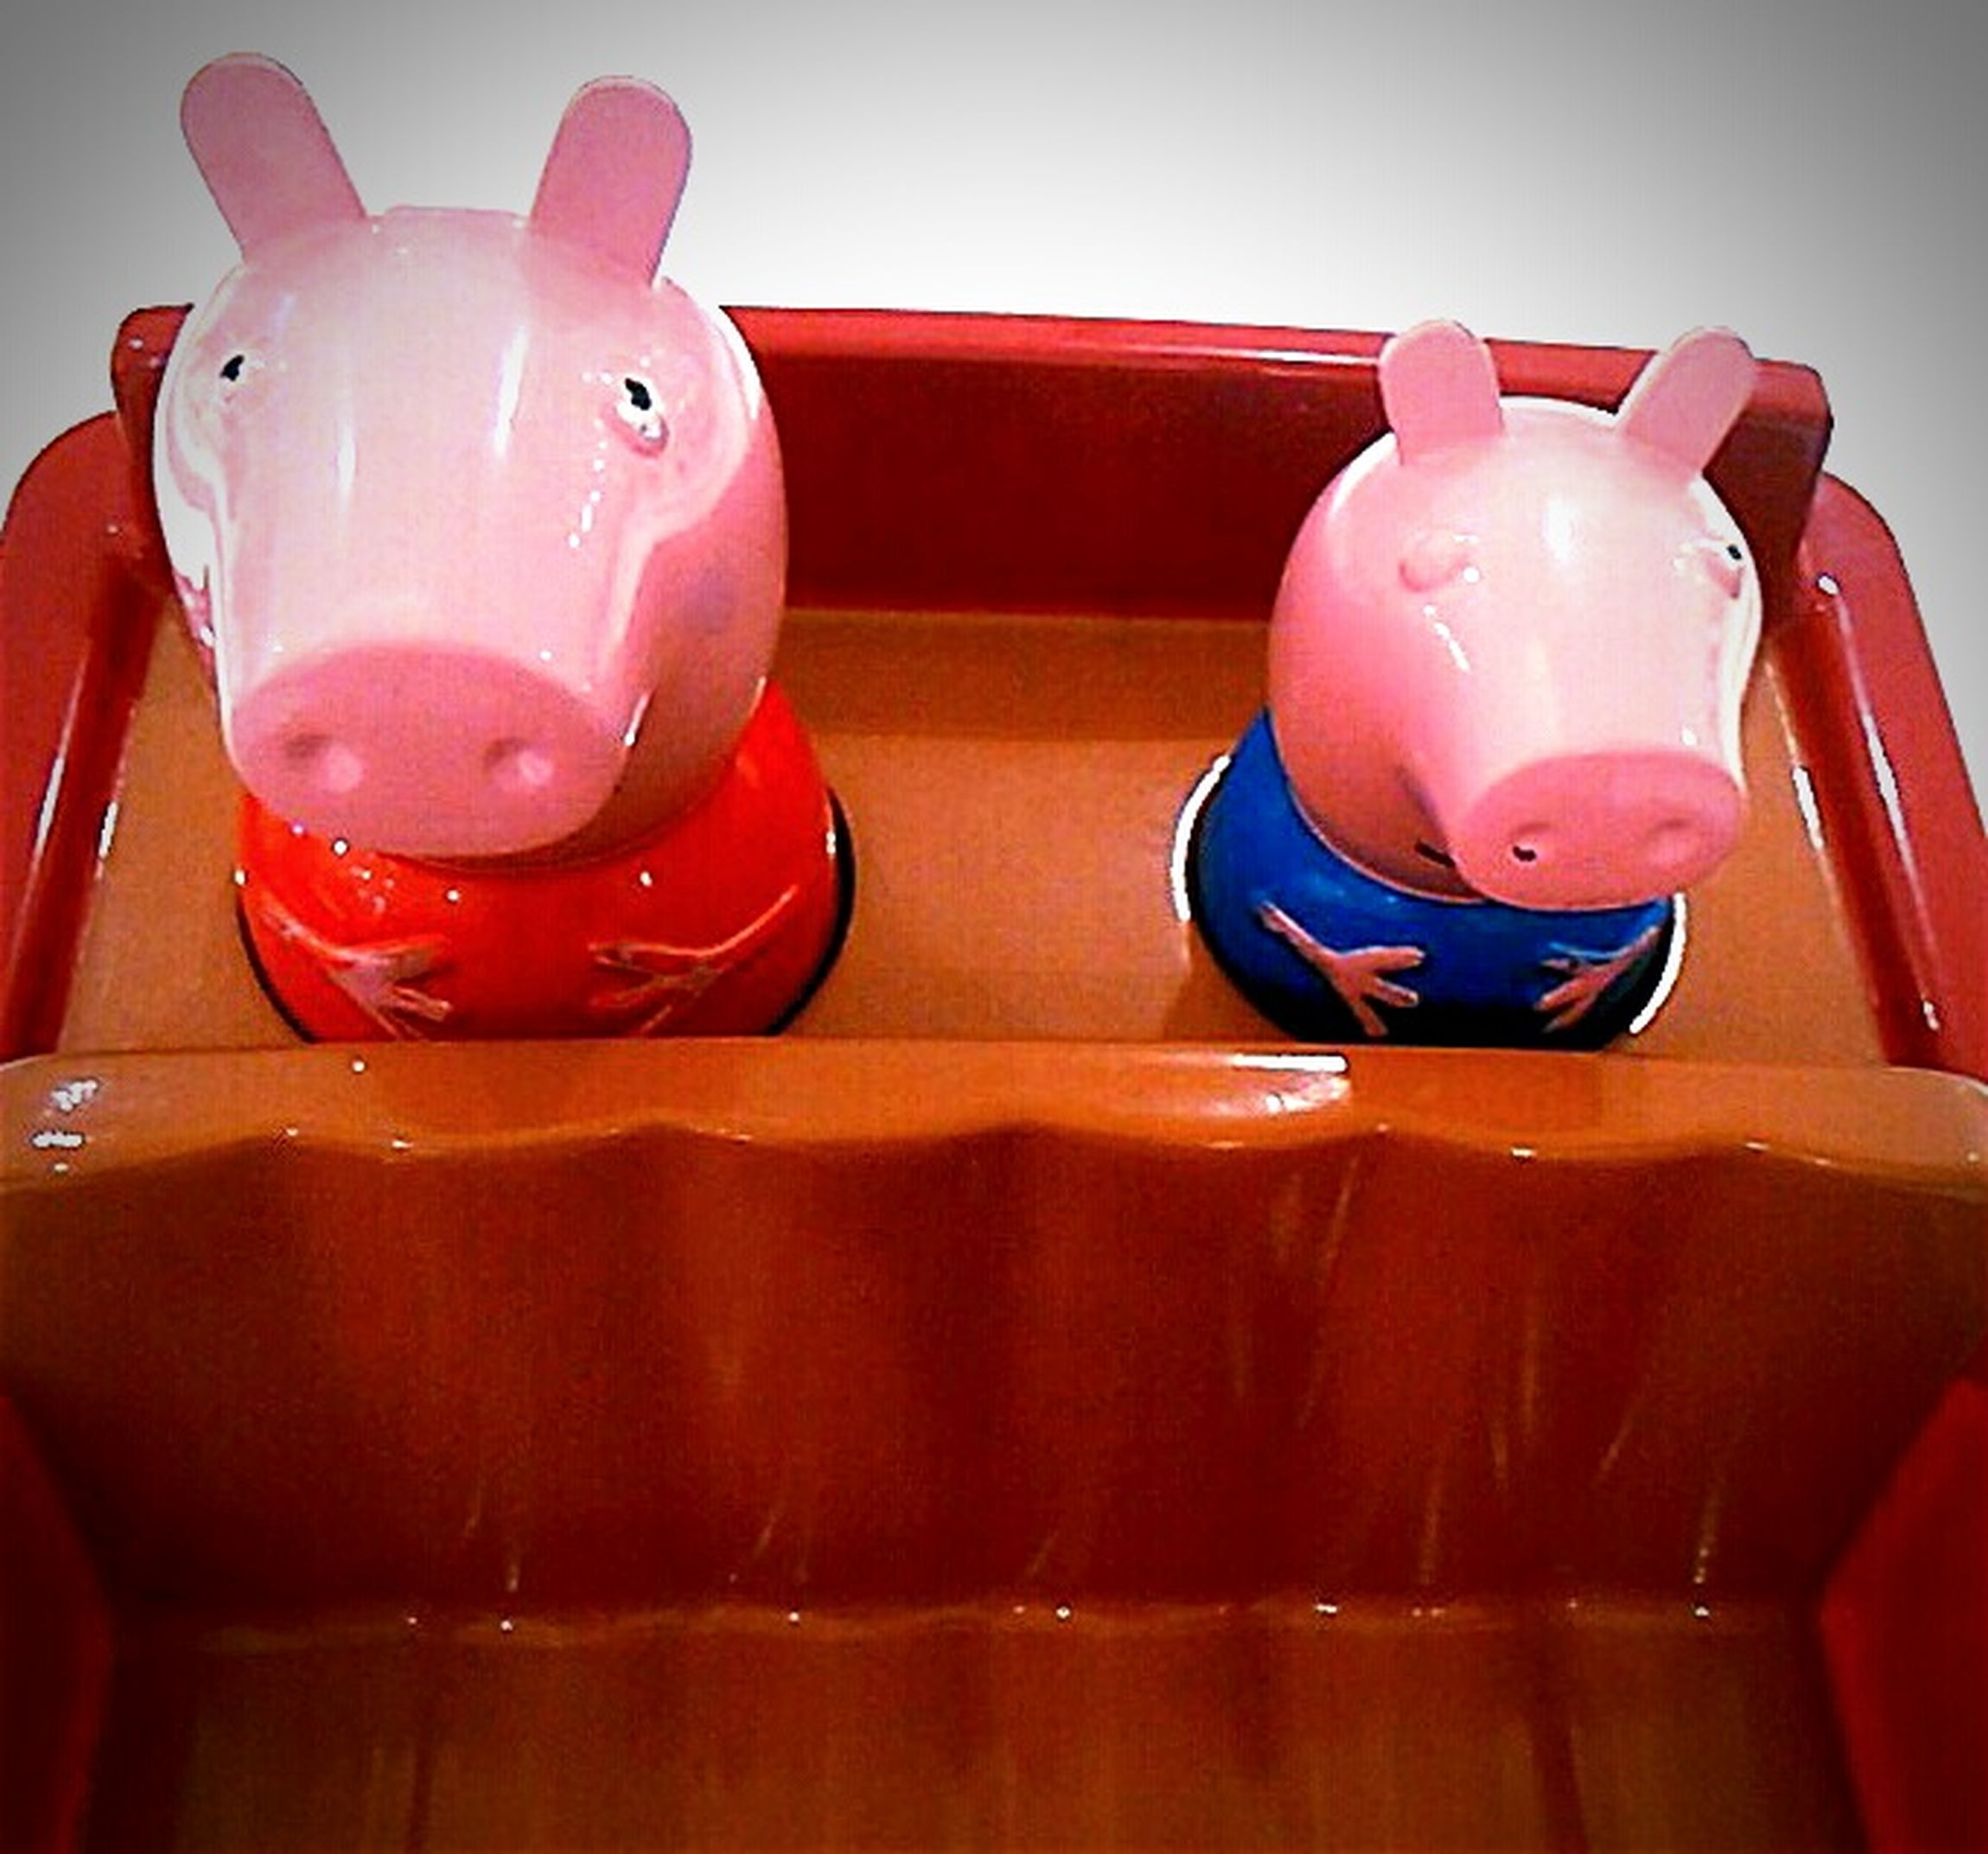 Peppapig Peppa Pig Streetphoto In Colour Peppa Pig, Scarier In Real Life! Two Cozy Pigs  Hanging Out With Peppa Pig Peppa Pig Said Their Would Be Days Like This He Likes Peppa Pig 🐽 Taking Photos Honey, I Shrunk The Kids